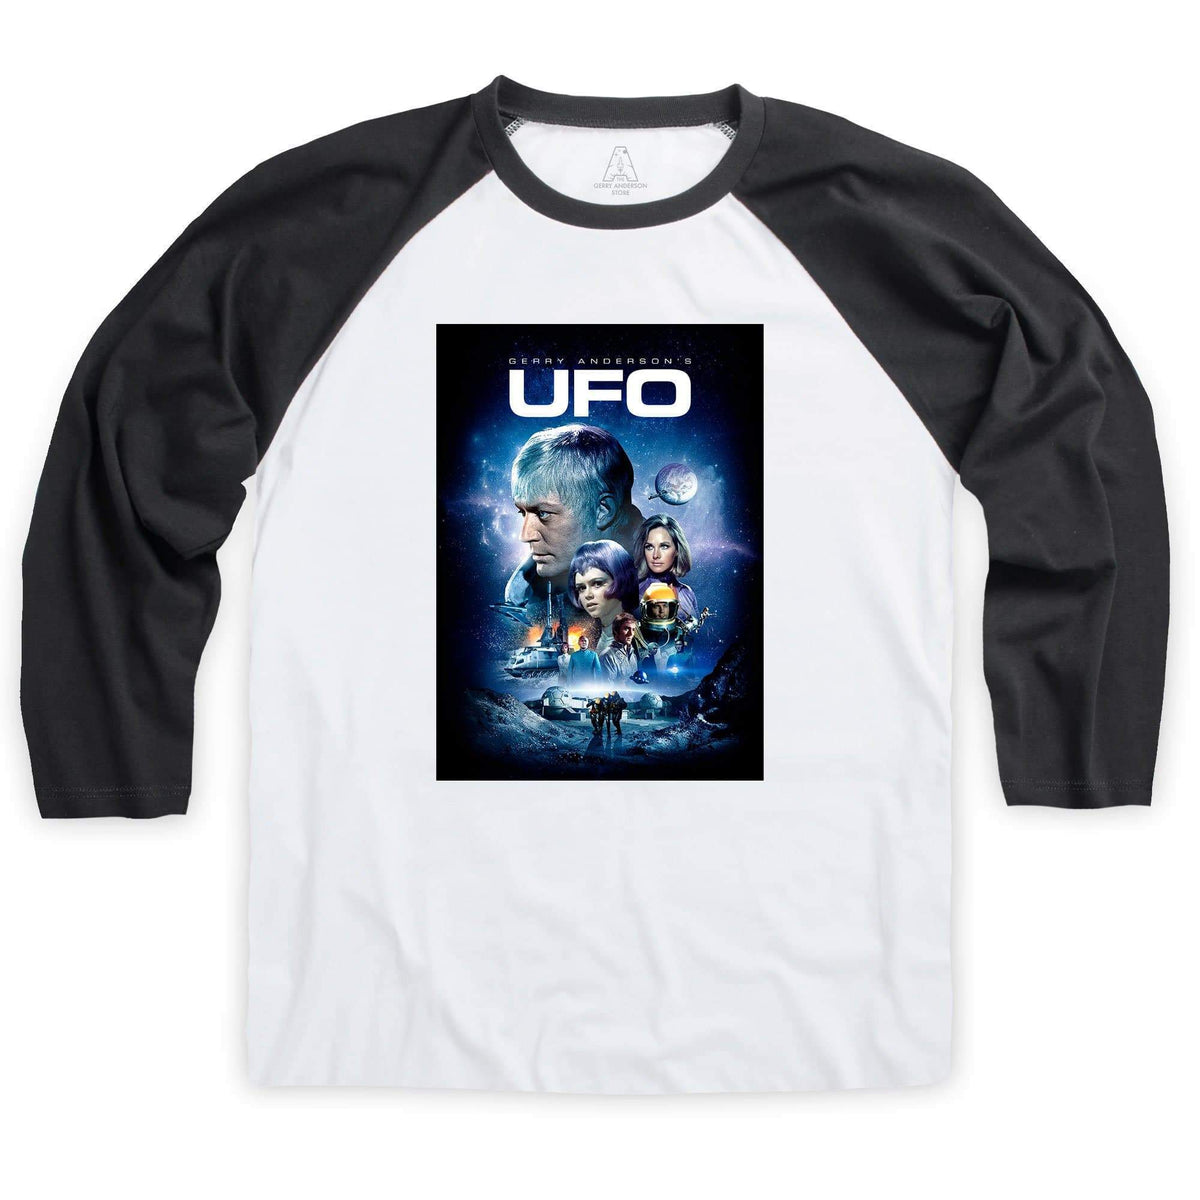 UFO Baseball T-Shirt [Official & Exclusive] - The Gerry Anderson Store